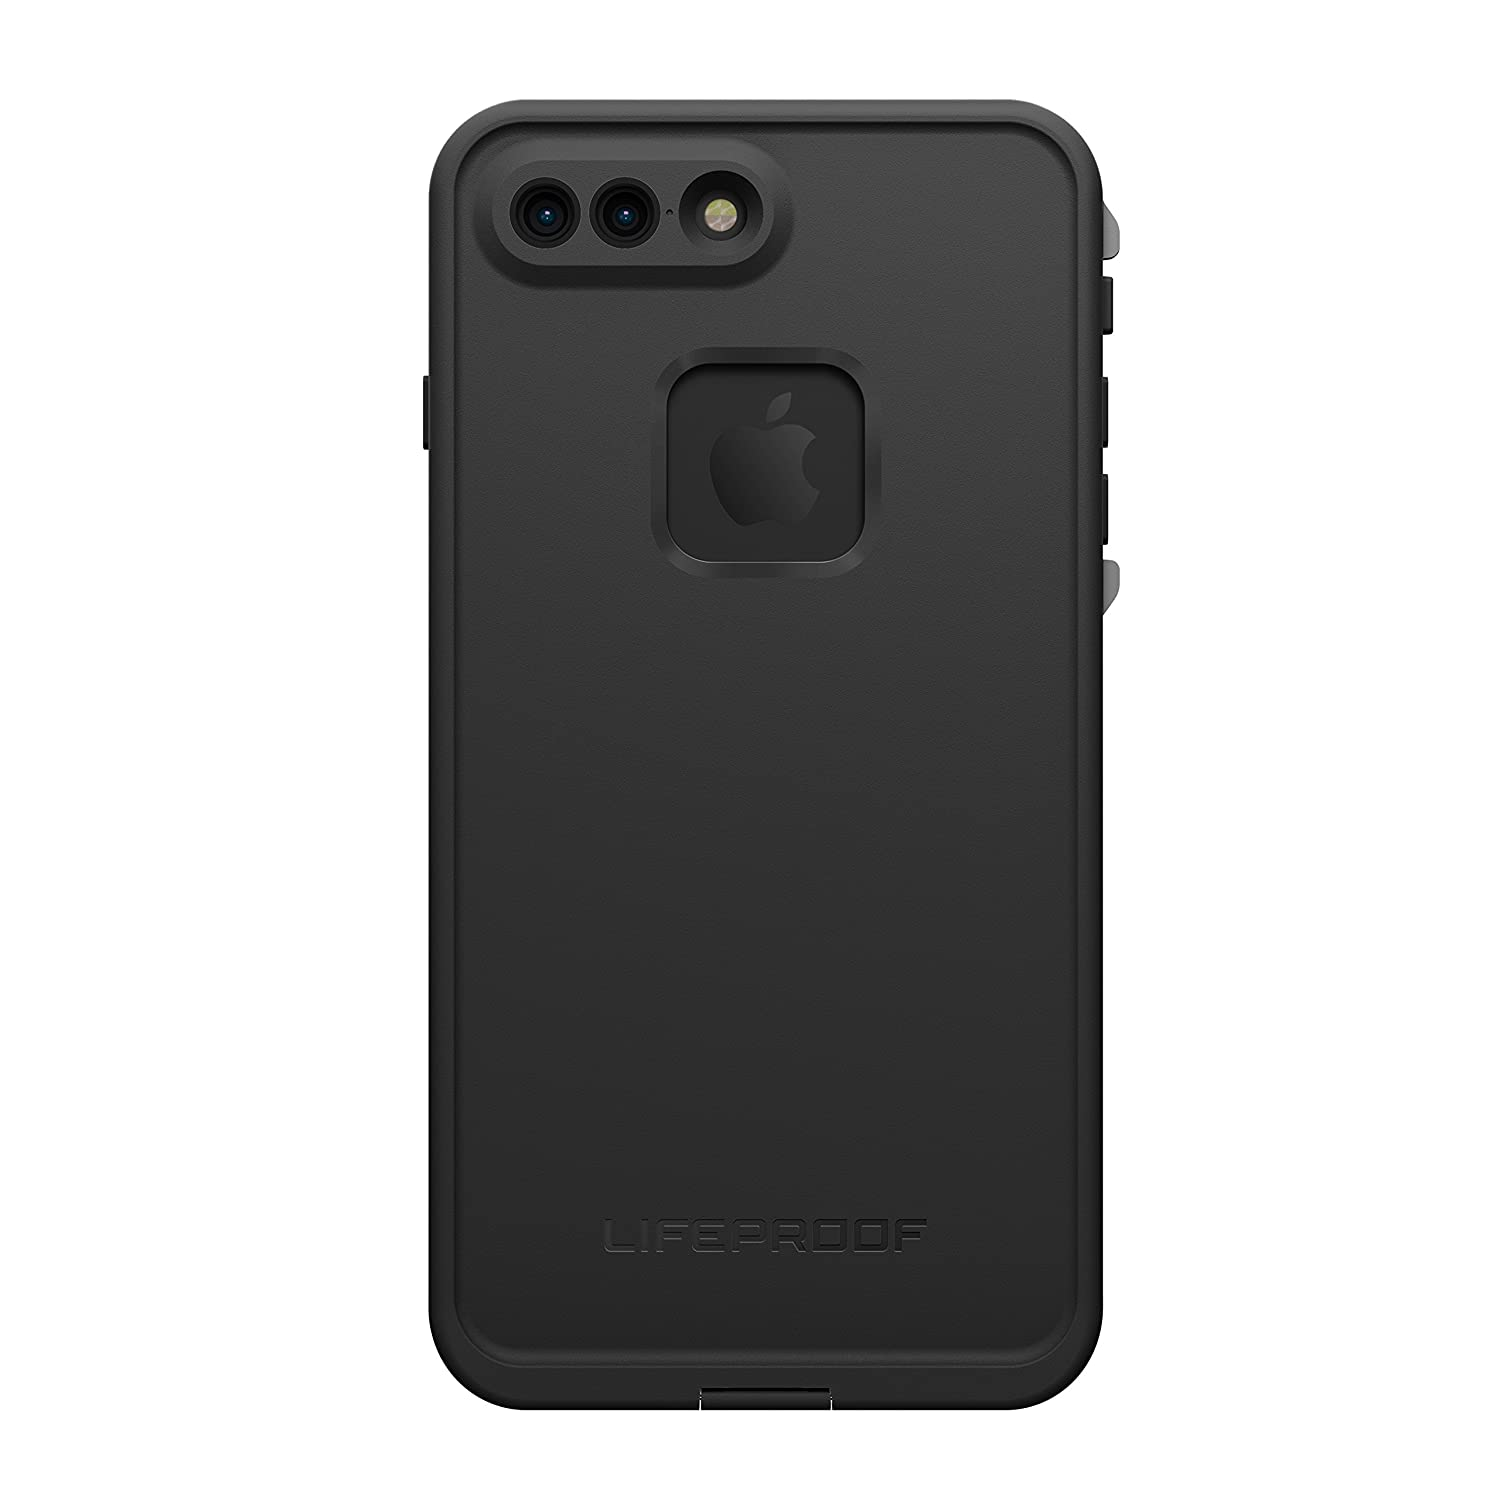 cheap for discount ed9a1 51b83 Lifeproof FRĒ SERIES Waterproof Case for iPhone 7 Plus (ONLY) - Retail  Packaging - ASPHALT (BLACK/DARK GREY)